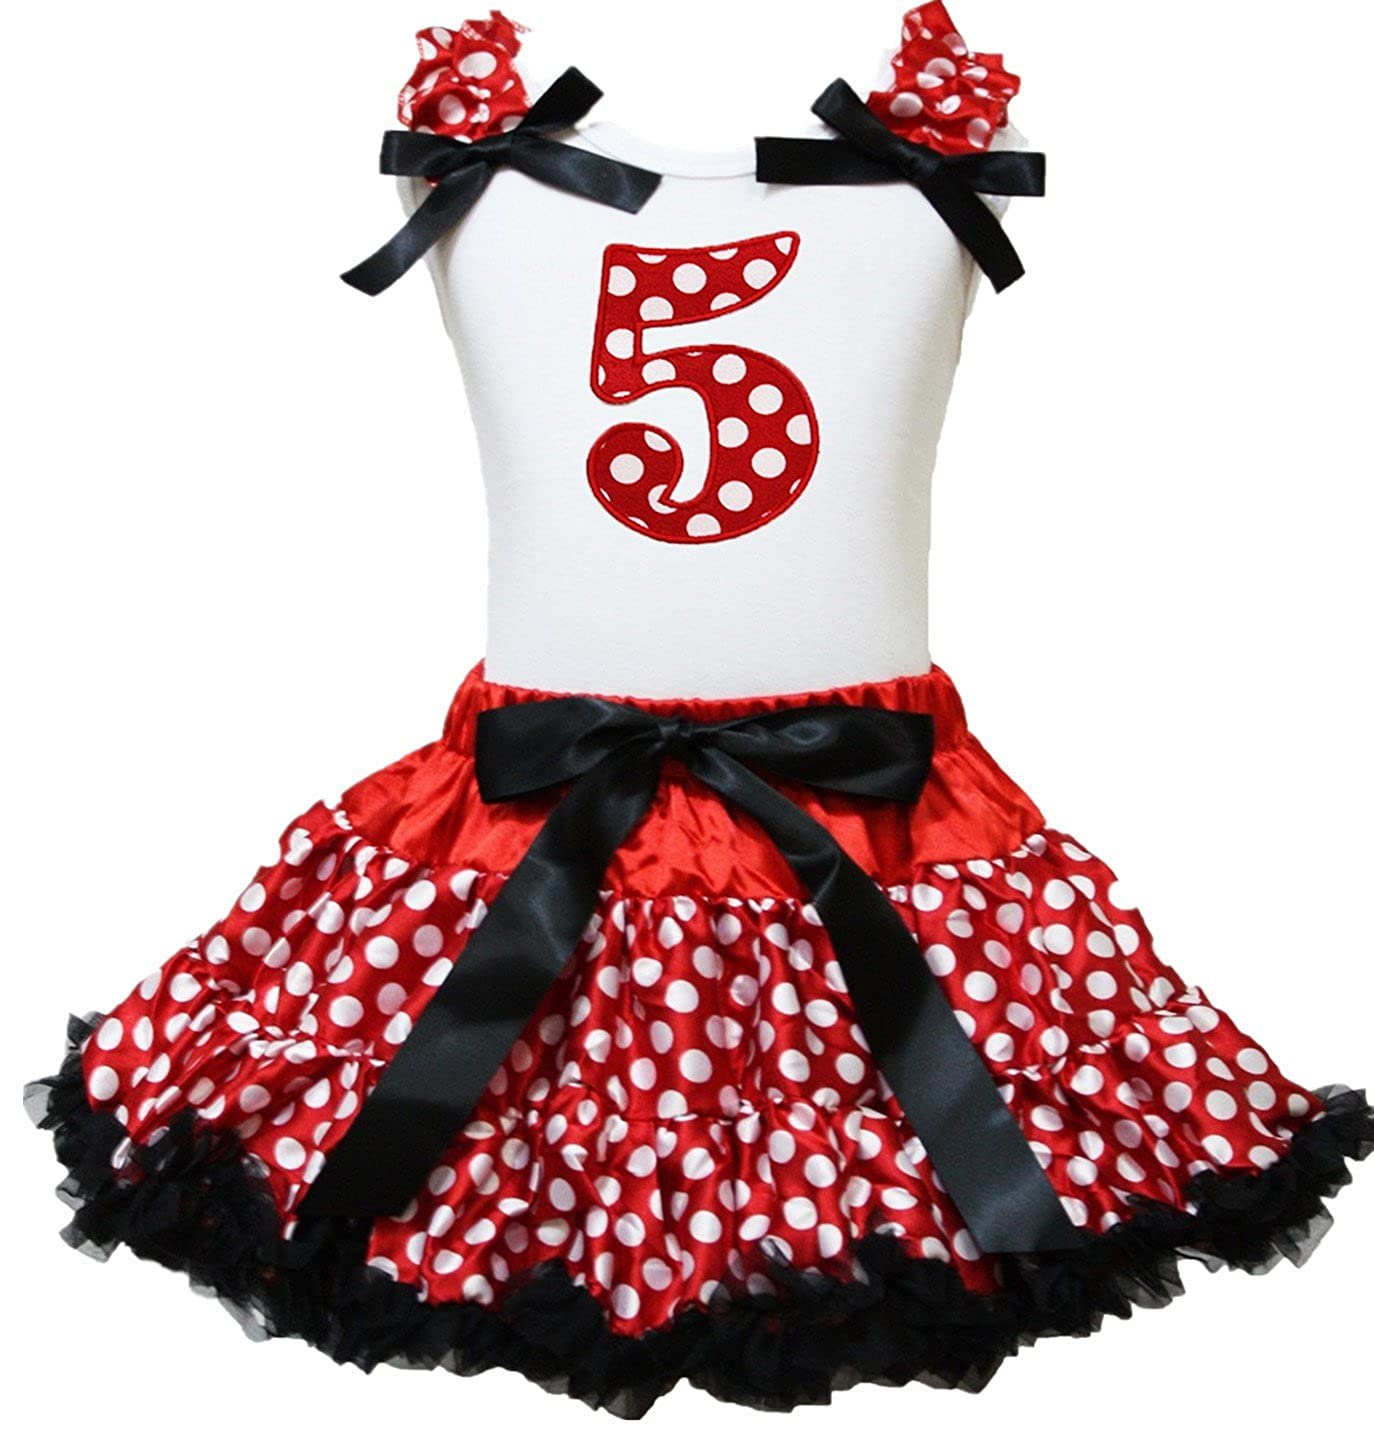 Petitebella 5th Birthday White Shirt Red Polka Dots Skirt Outfit 1-8y